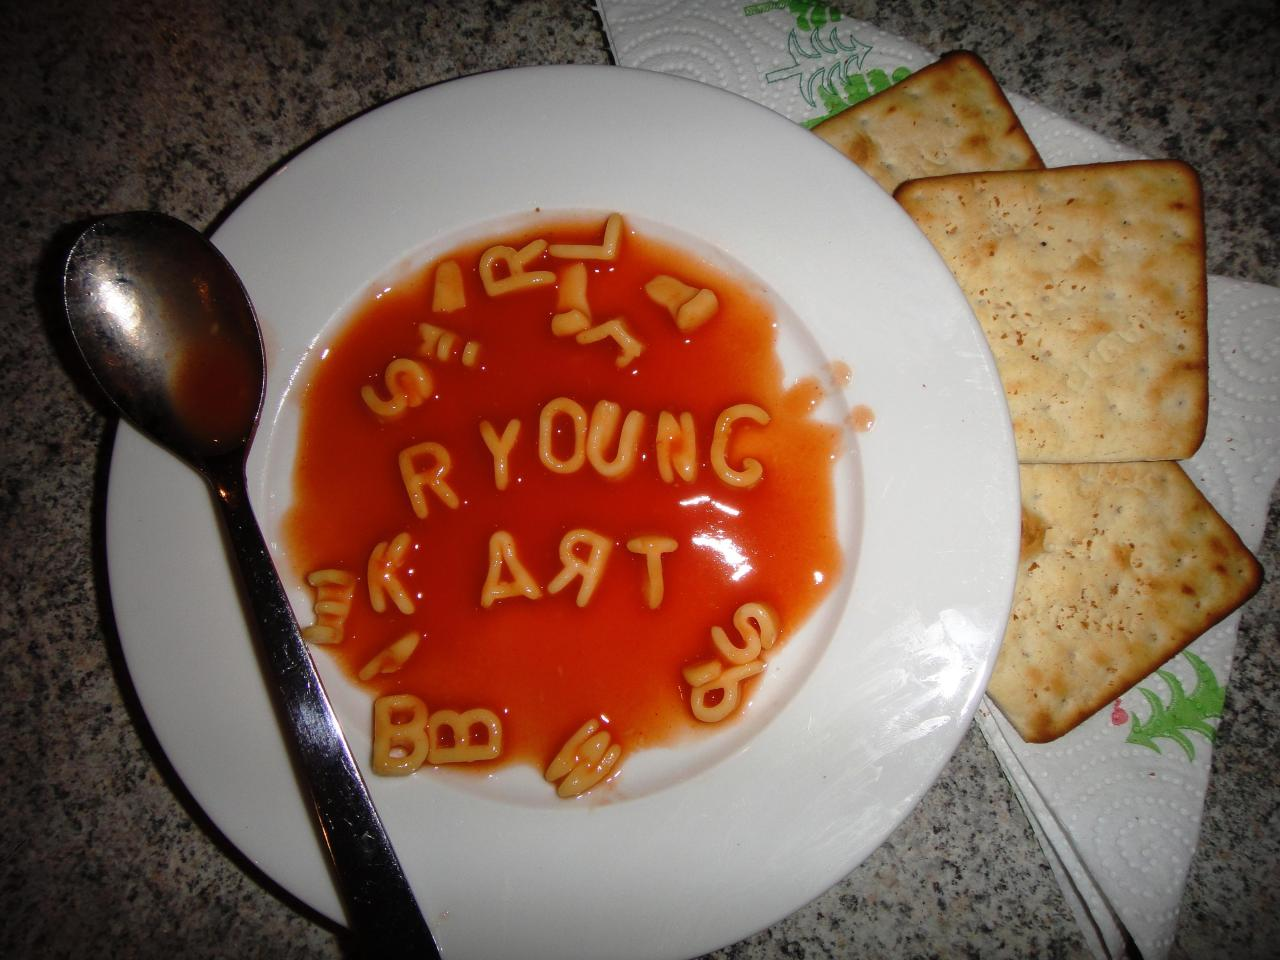 r-young-art-alphabet-soup